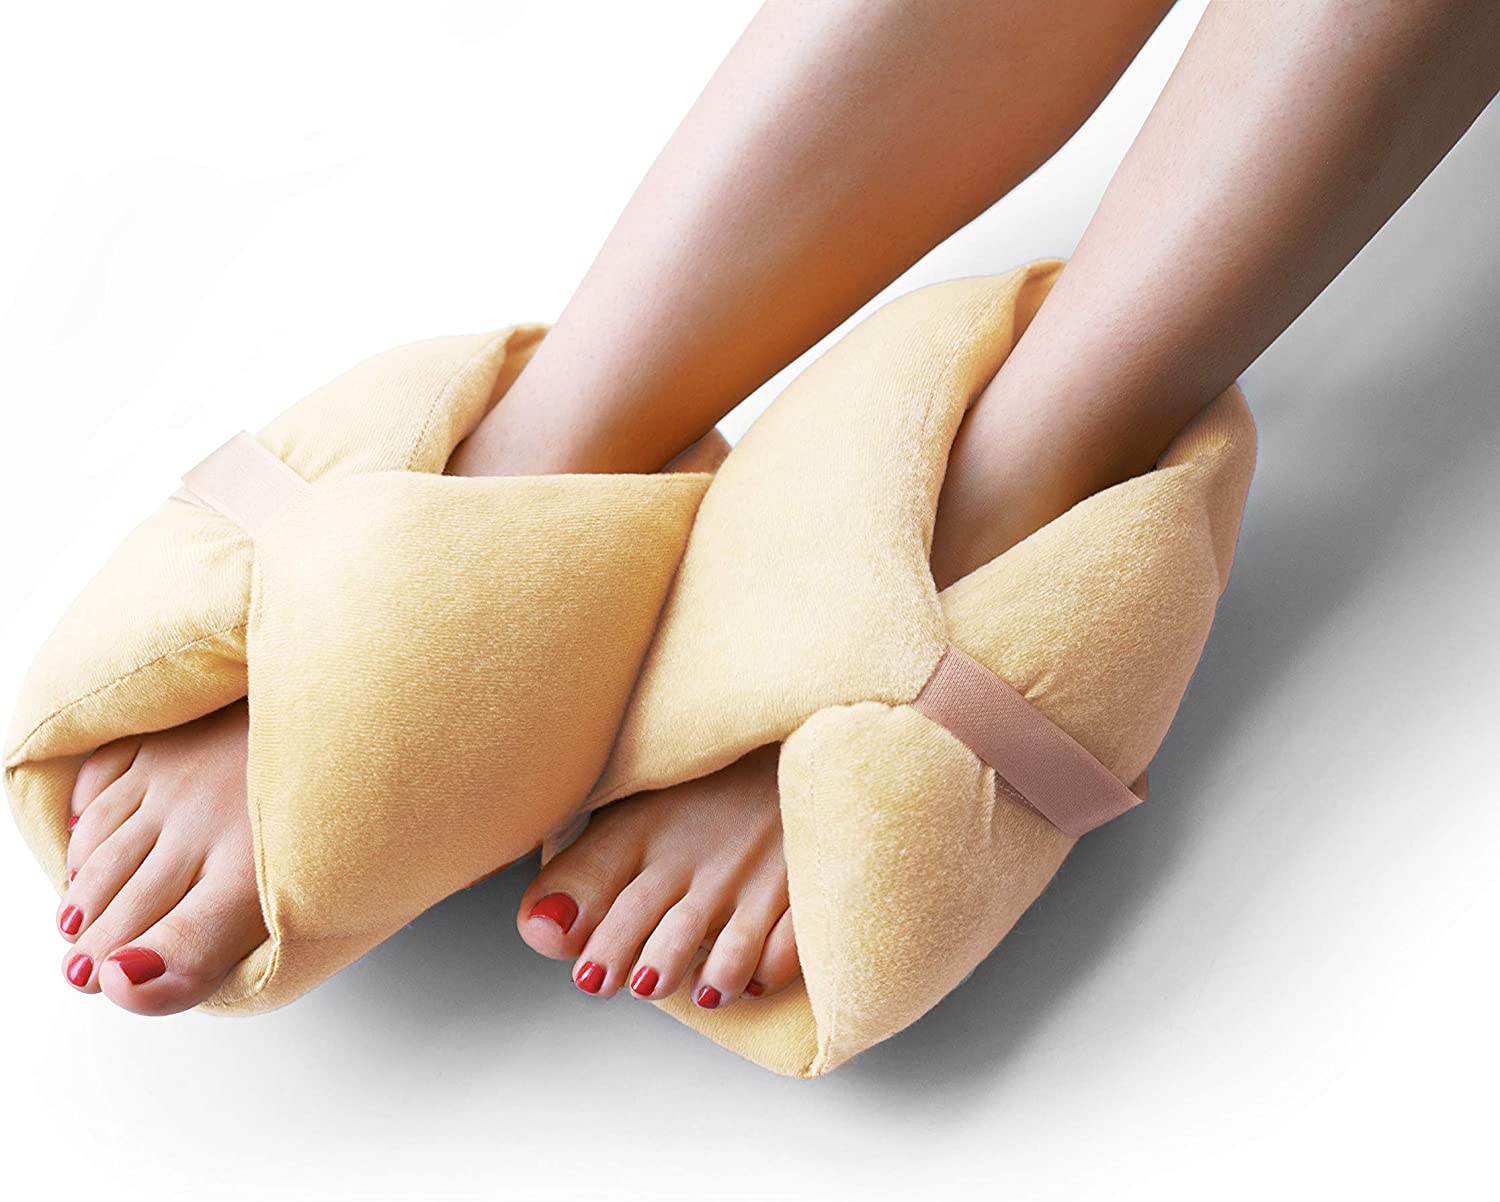 Bed Sores Heel Protectors - Protector Cushions for Pressute Sores - One Pair of Pressure Sore Foot Pads Pillows Suitable for Heels Feet Ankle Elbow